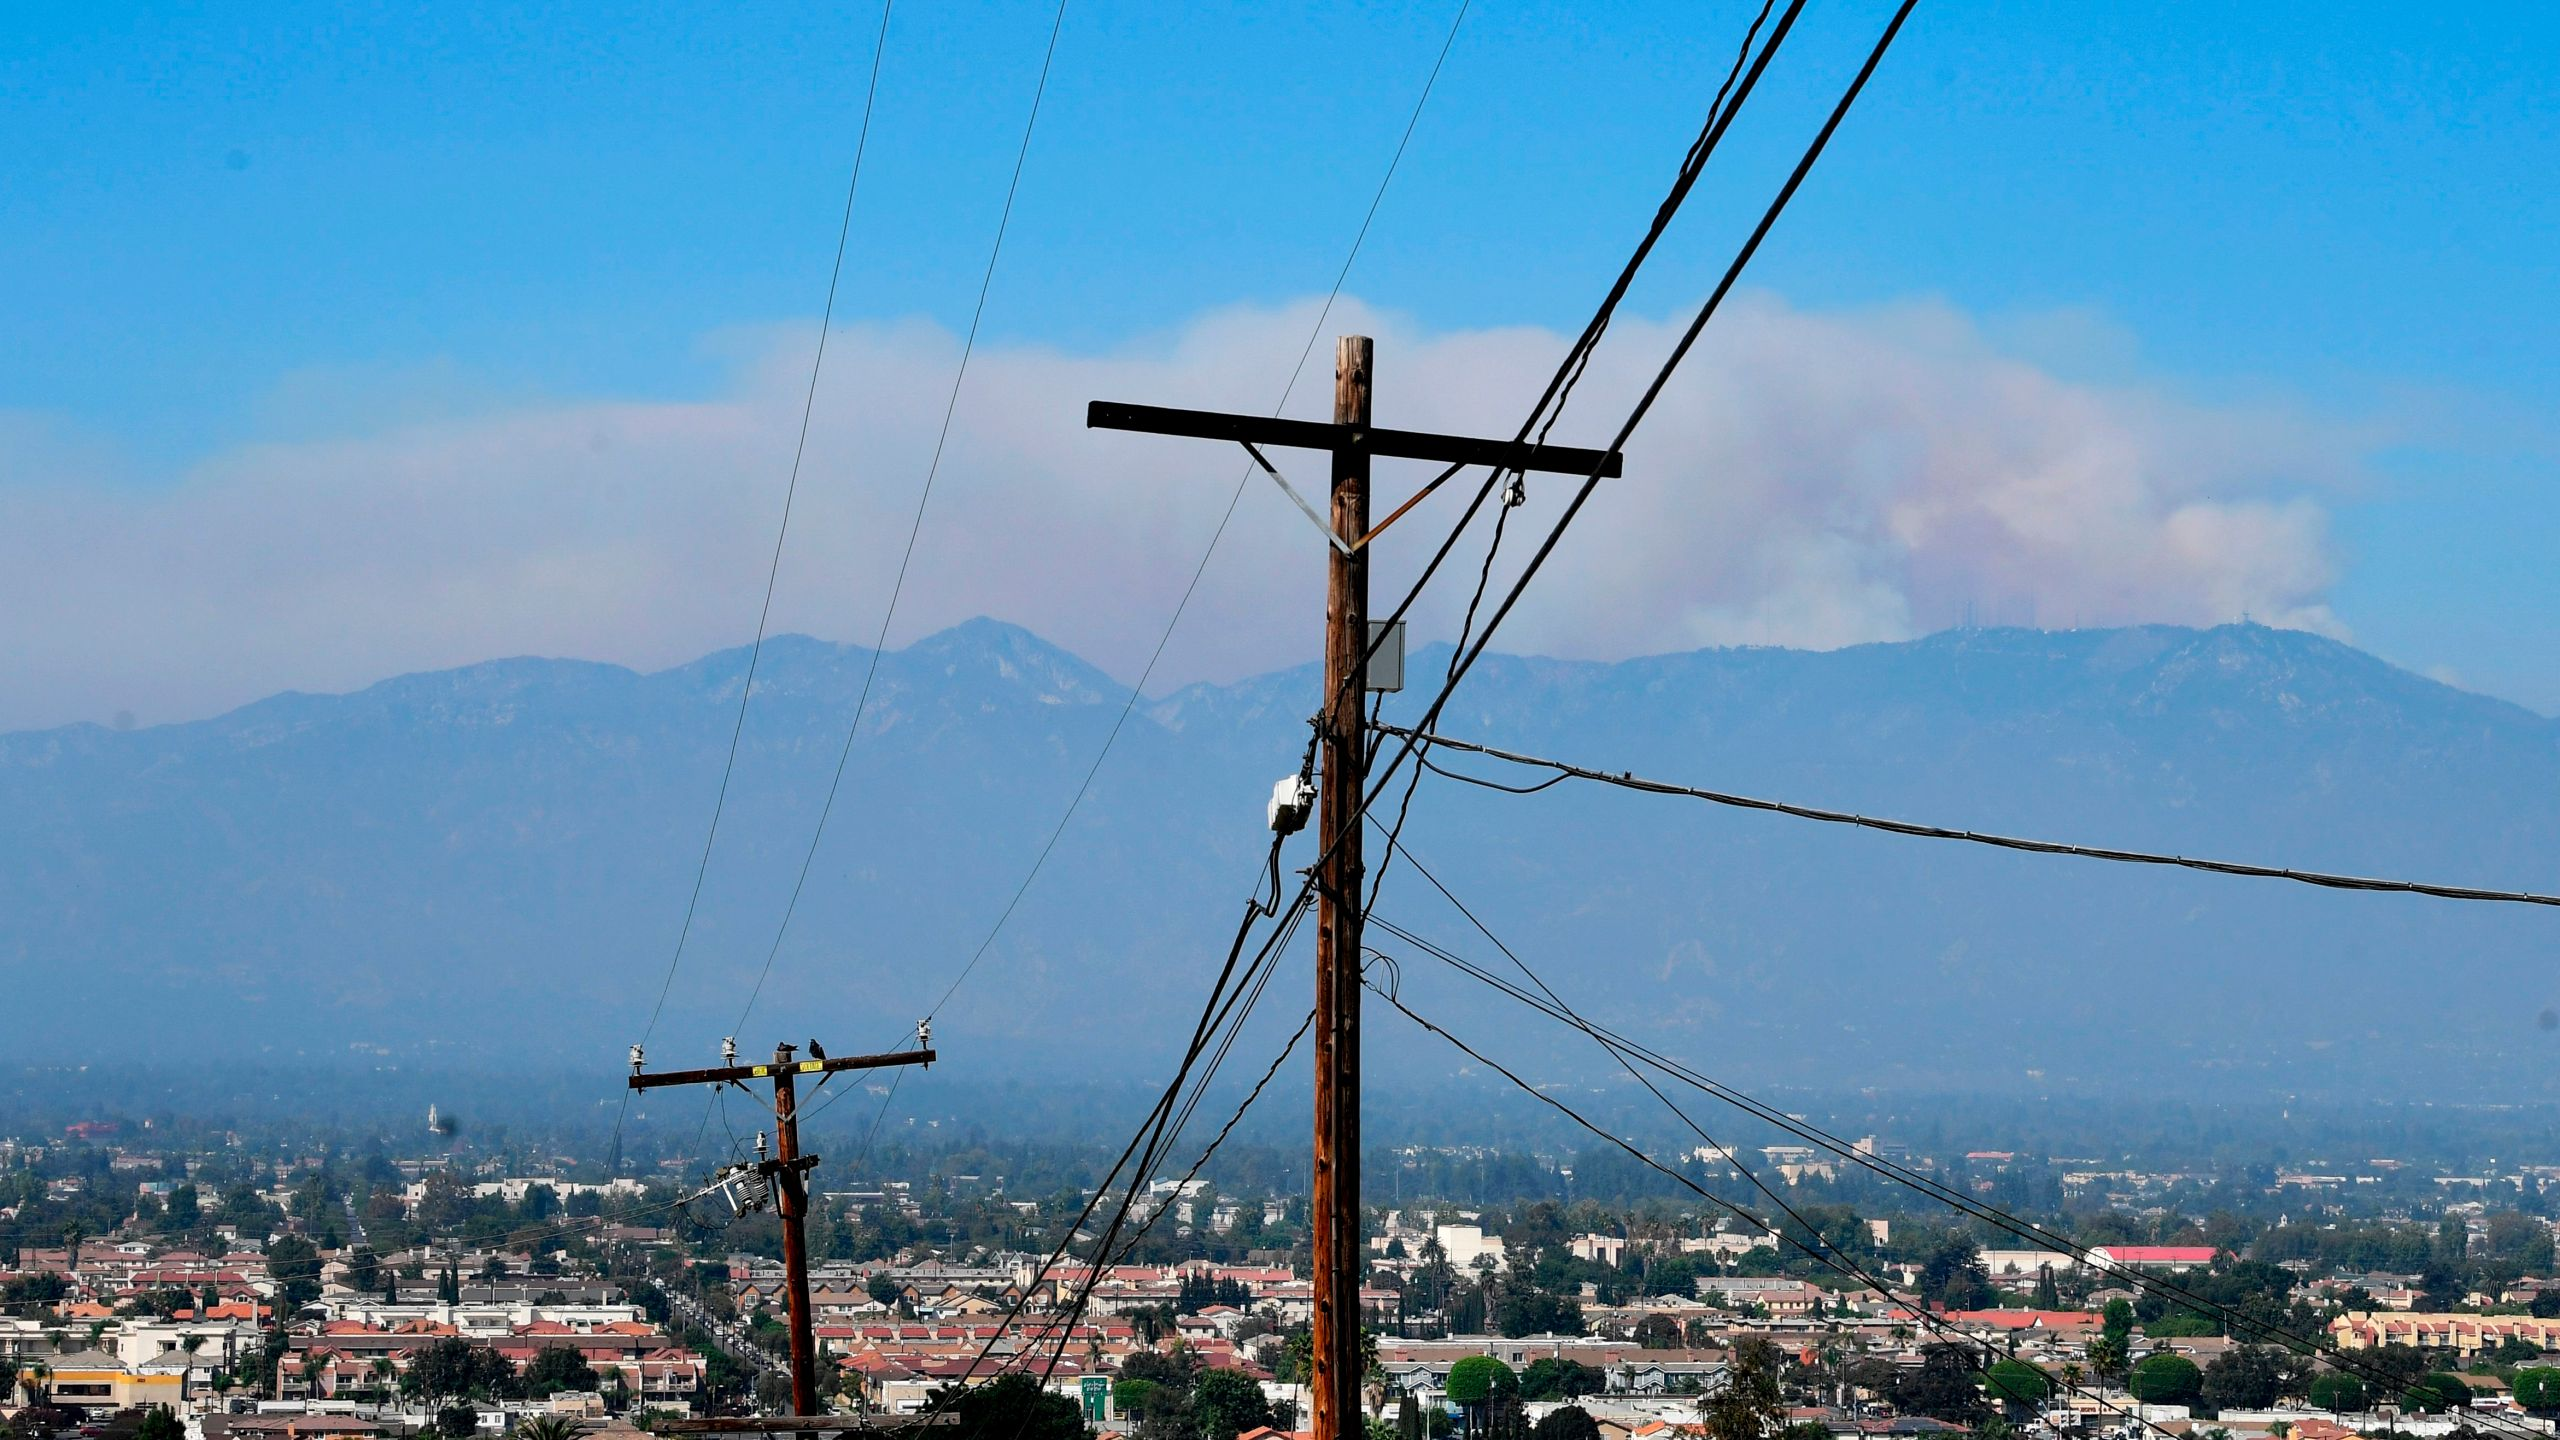 A huge plume of smoke from the Bobcat Fire rises from the Angeles National Forest over the San Gabriel Mountains as seen from Monterey Park, California on September 21, 2020. (FREDERIC J. BROWN/AFP via Getty Images)